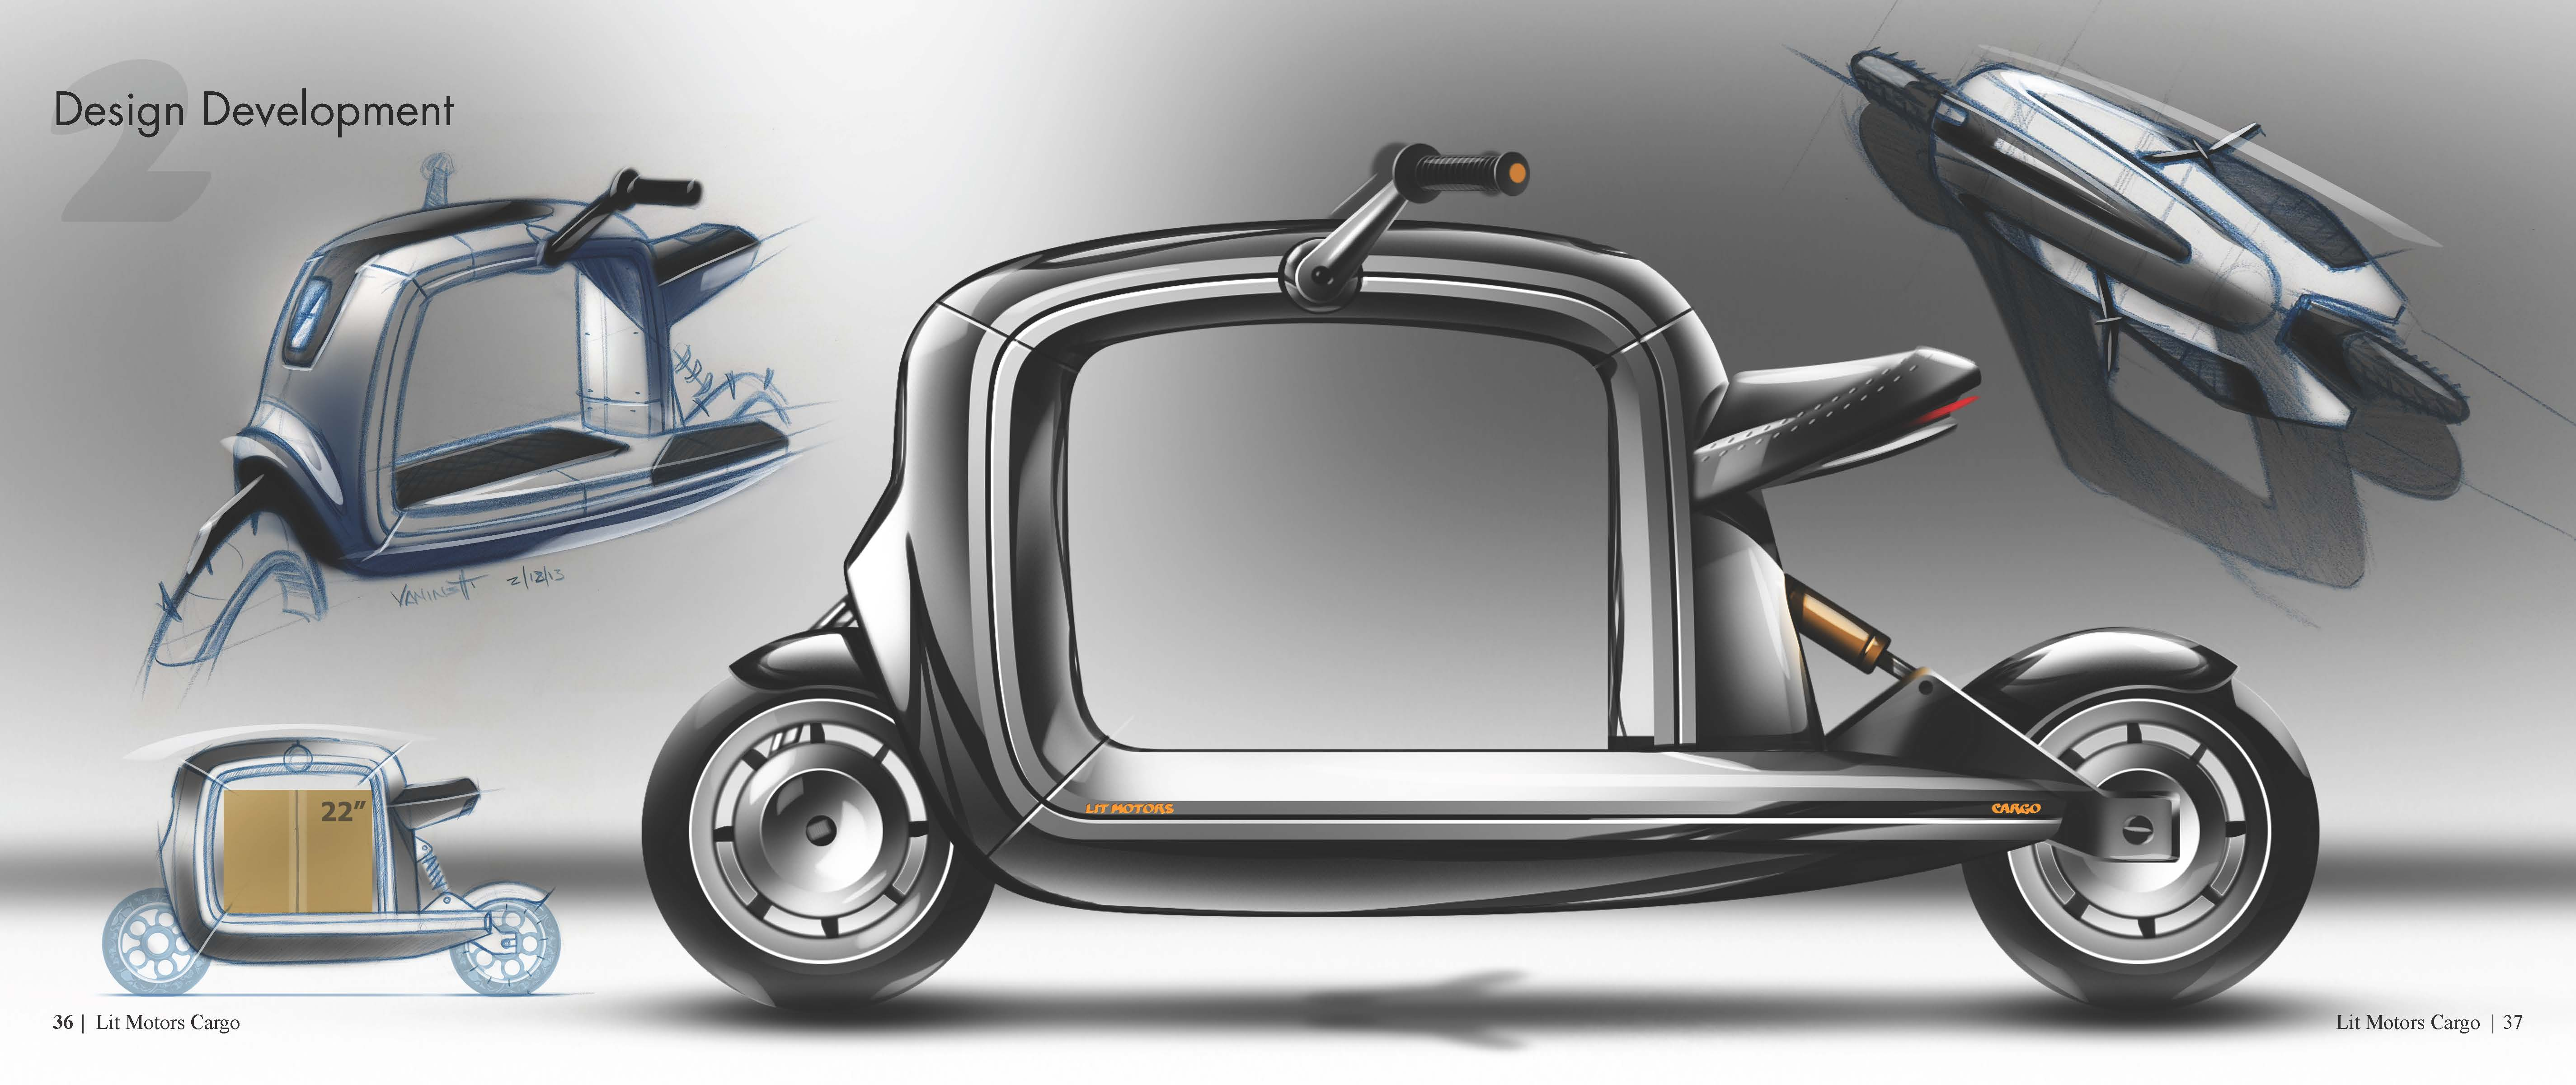 lit motors cargo scooter kubo by tj vaninetti at. Black Bedroom Furniture Sets. Home Design Ideas